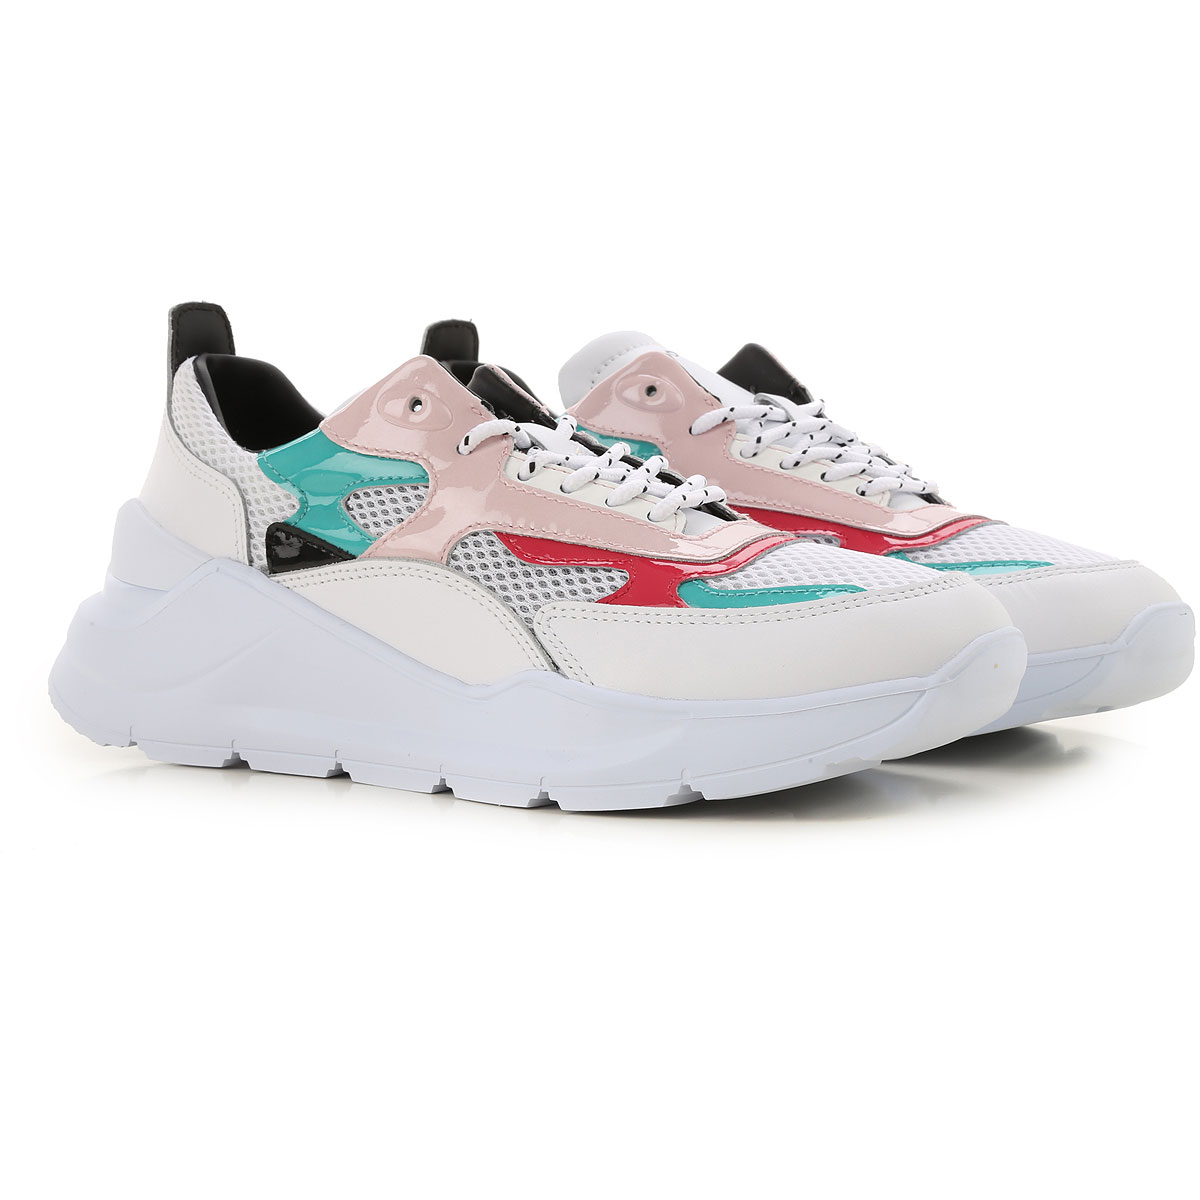 D.A.T.E. Sneakers for Women On Sale in Outlet, White, Leather, 2019, US 8.5 - UK 6 - EU 39 - JP 25 US 8 5 - UK 6 5 - EU 40 - JP 26